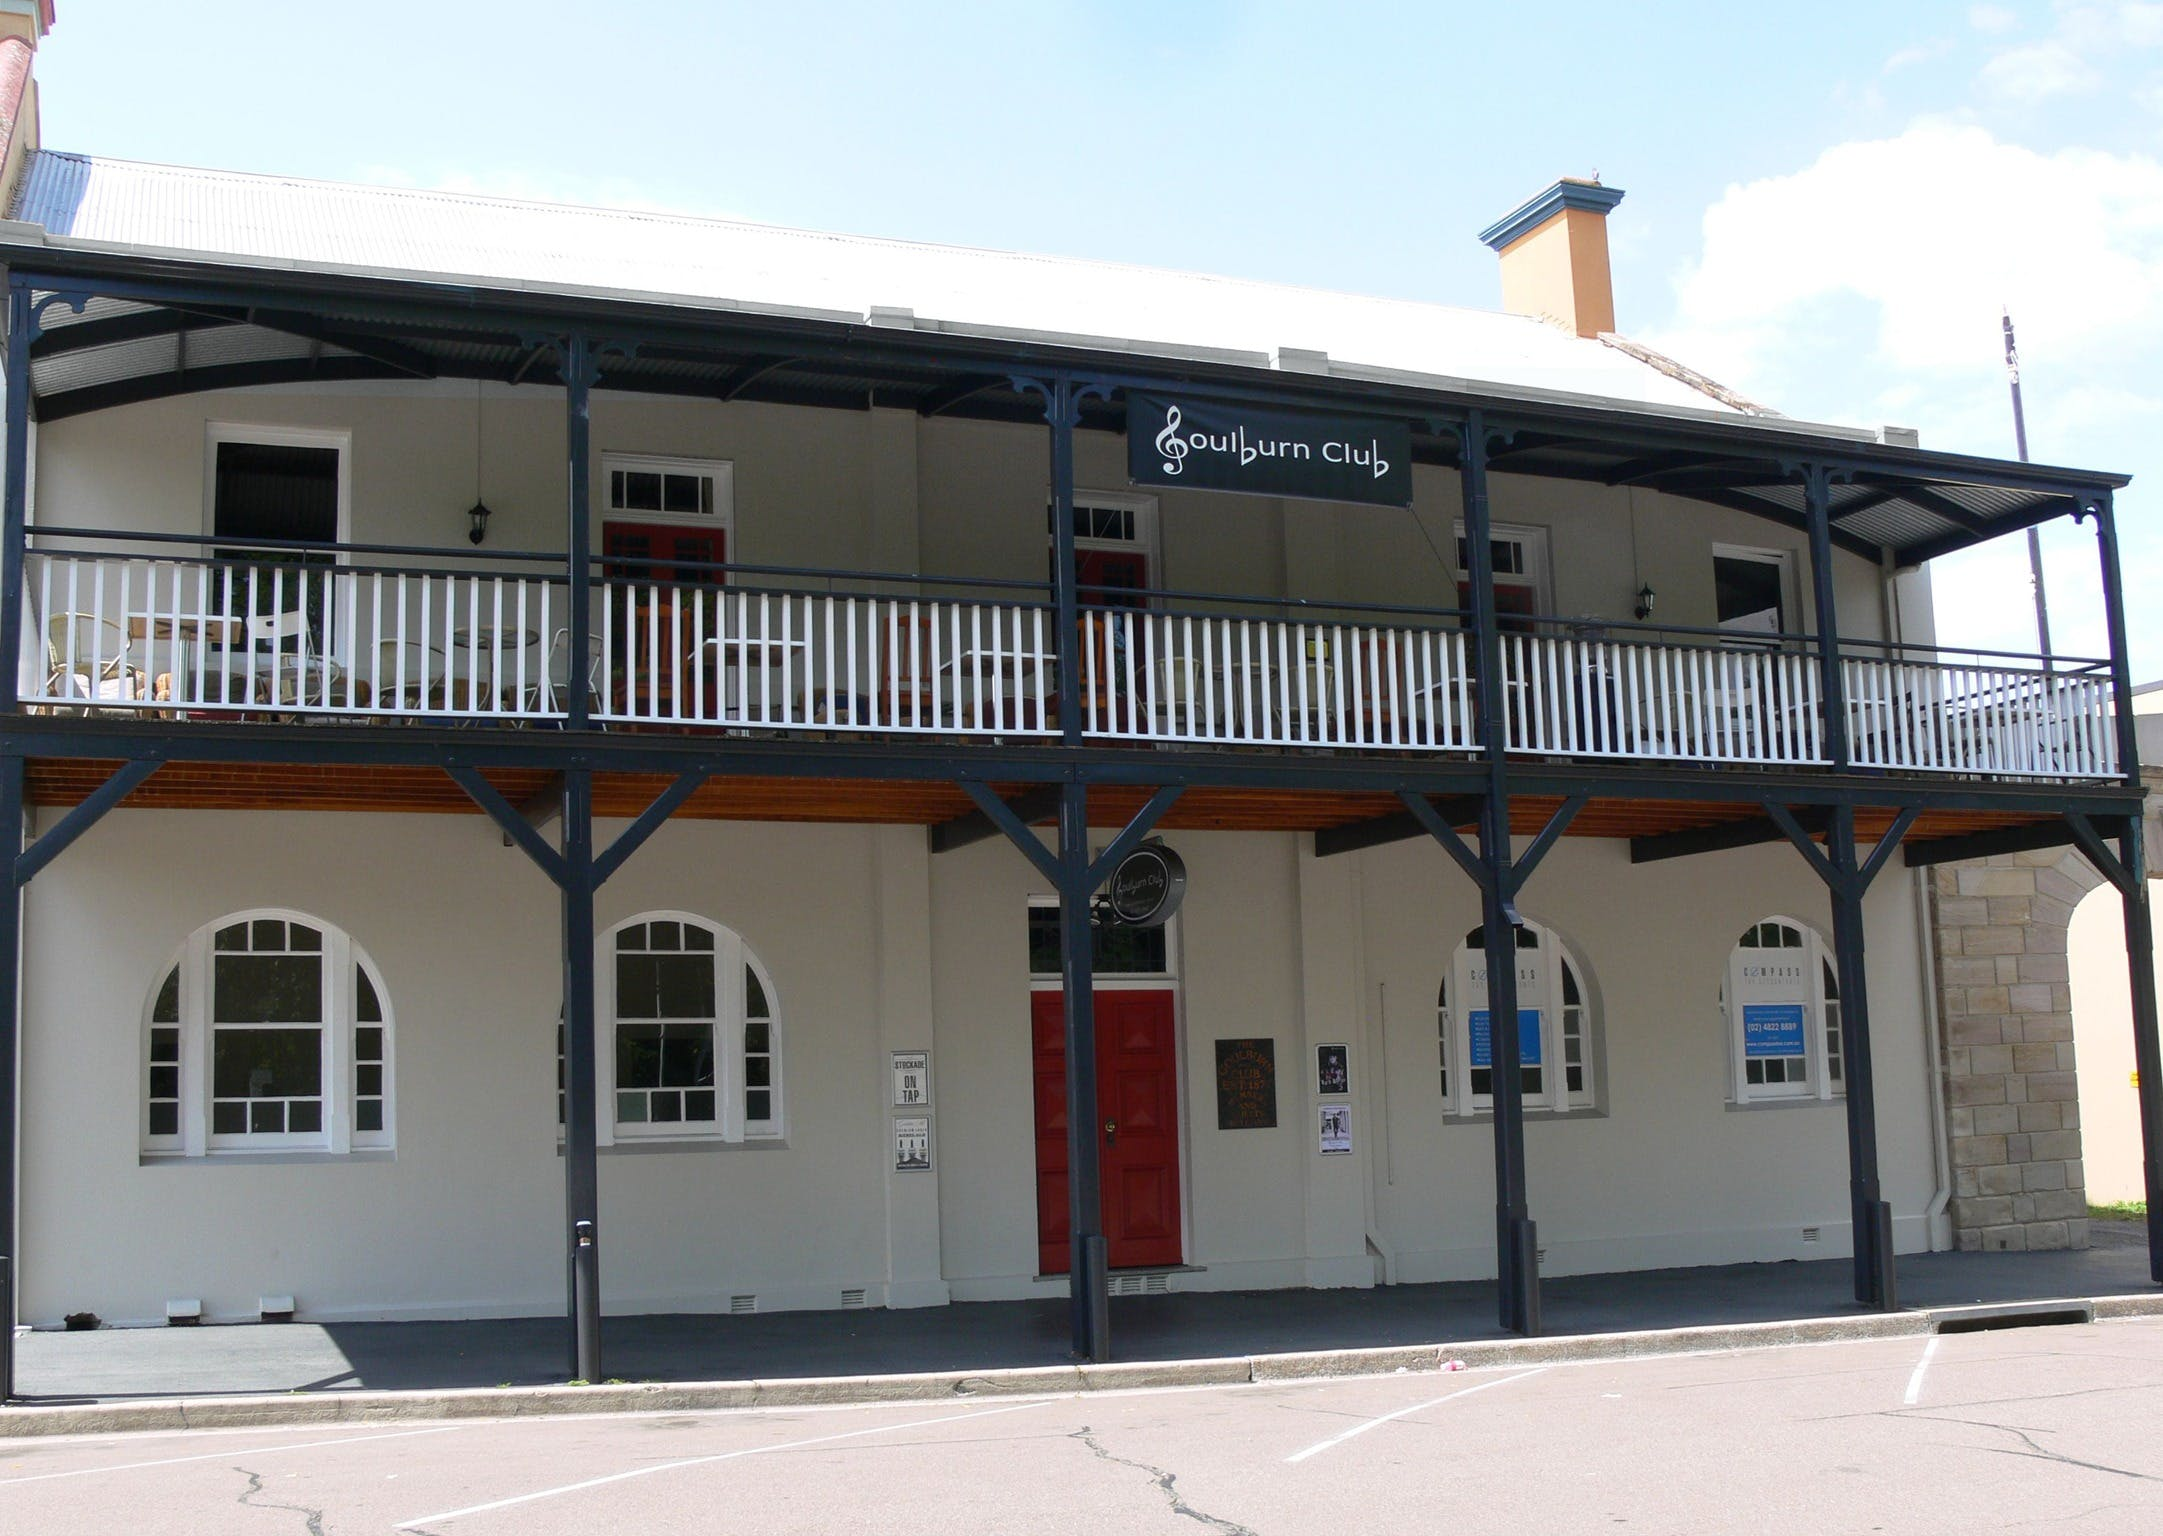 Open Mic Night at the Goulburn Club - Accommodation Fremantle